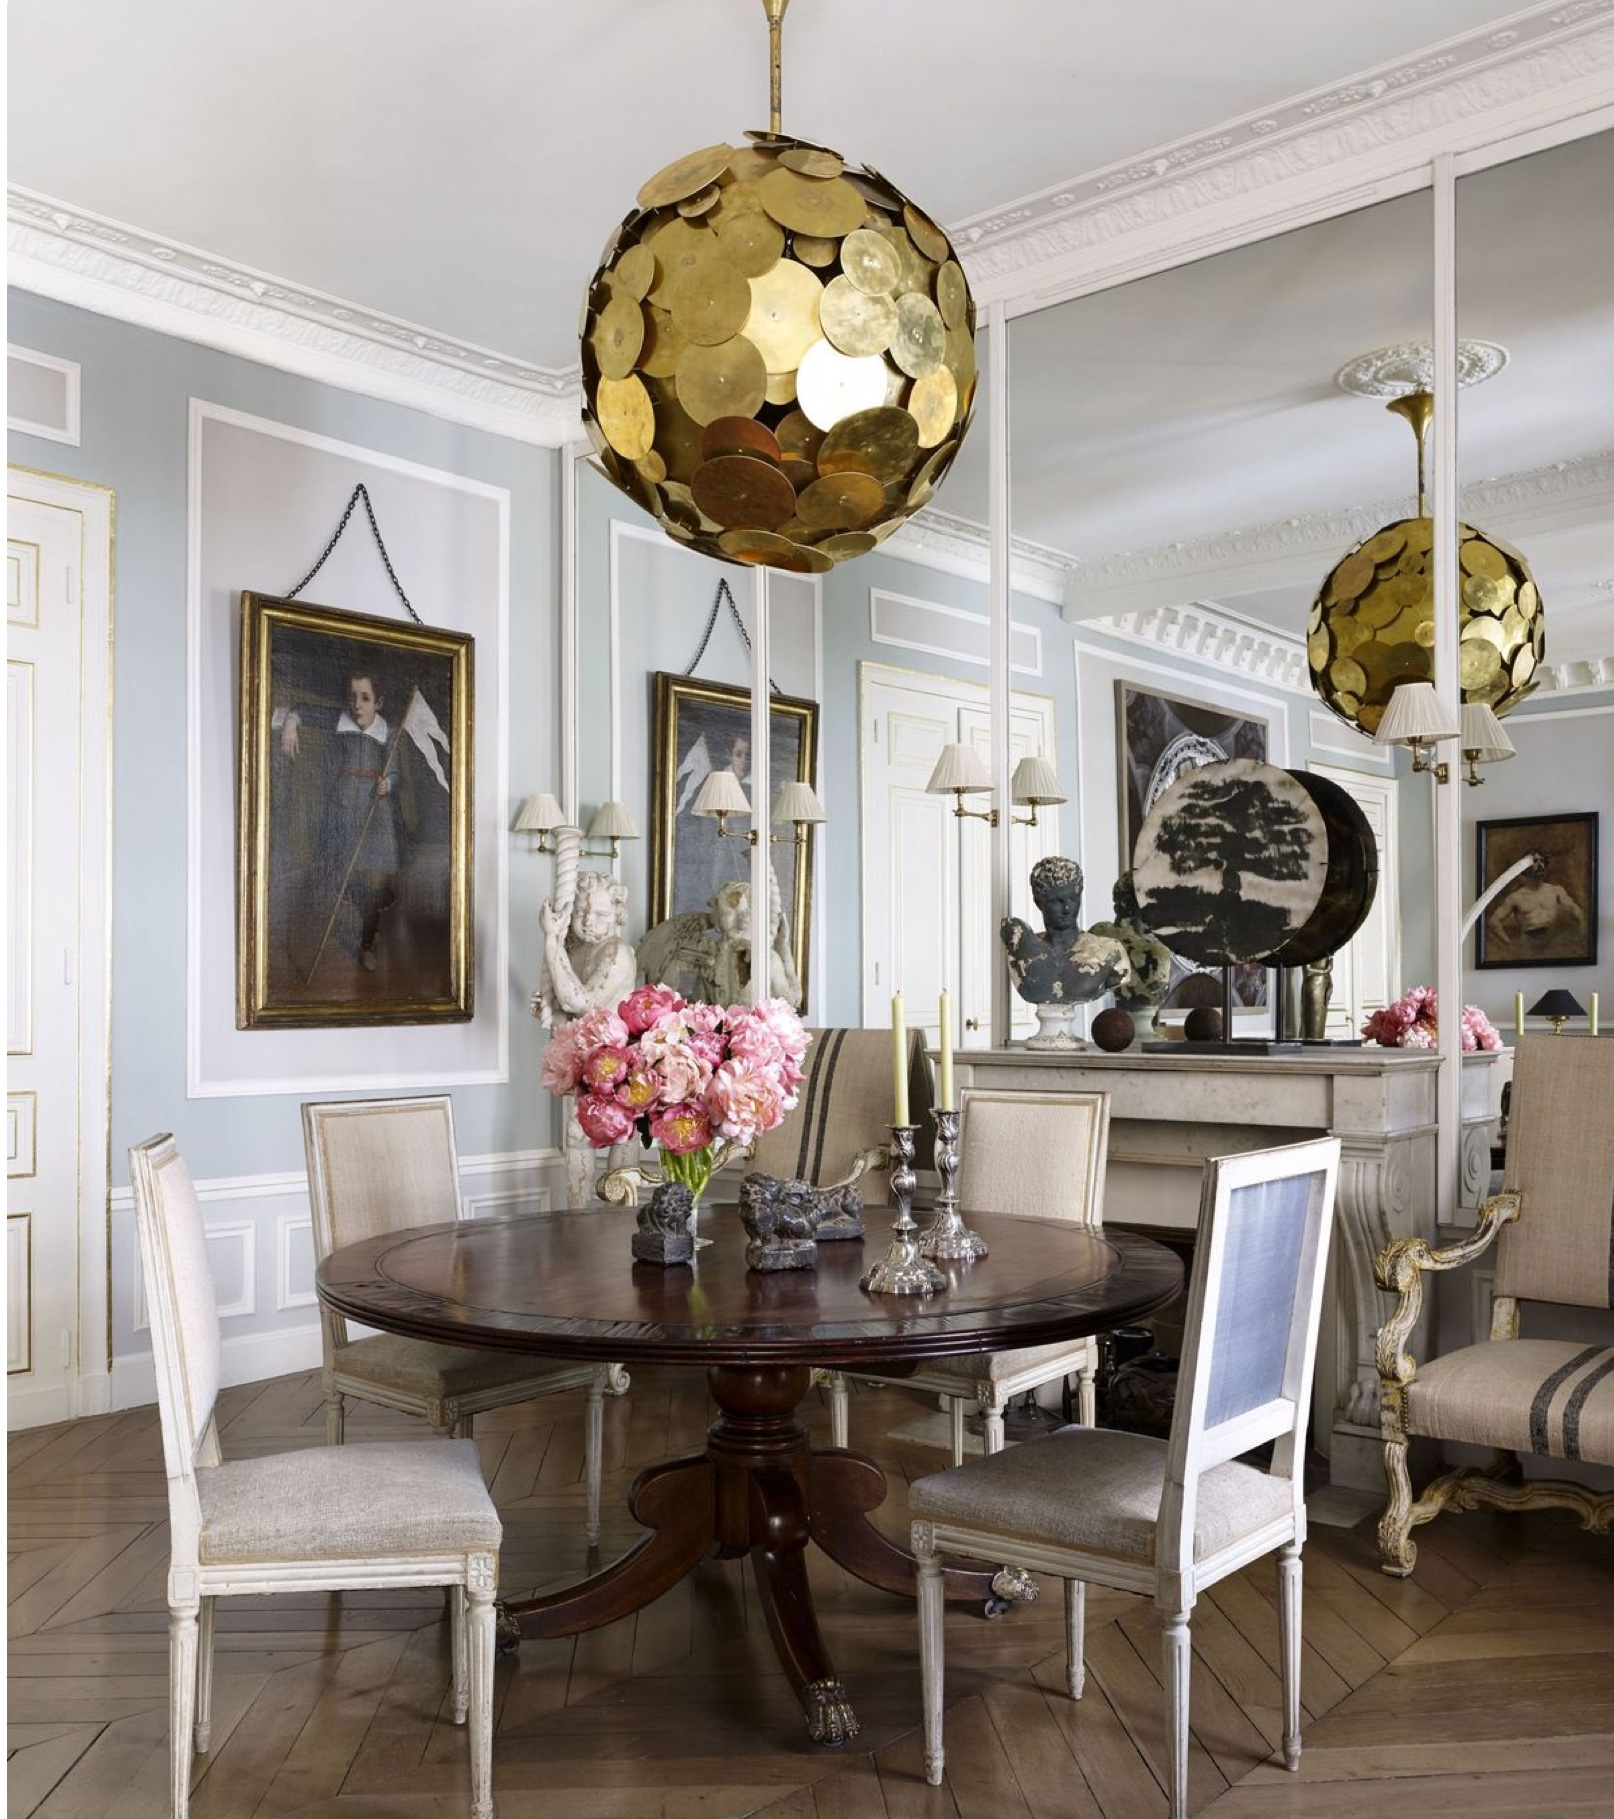 ... Stunning Dining Room Centerpiece. Image Via Elle Decor